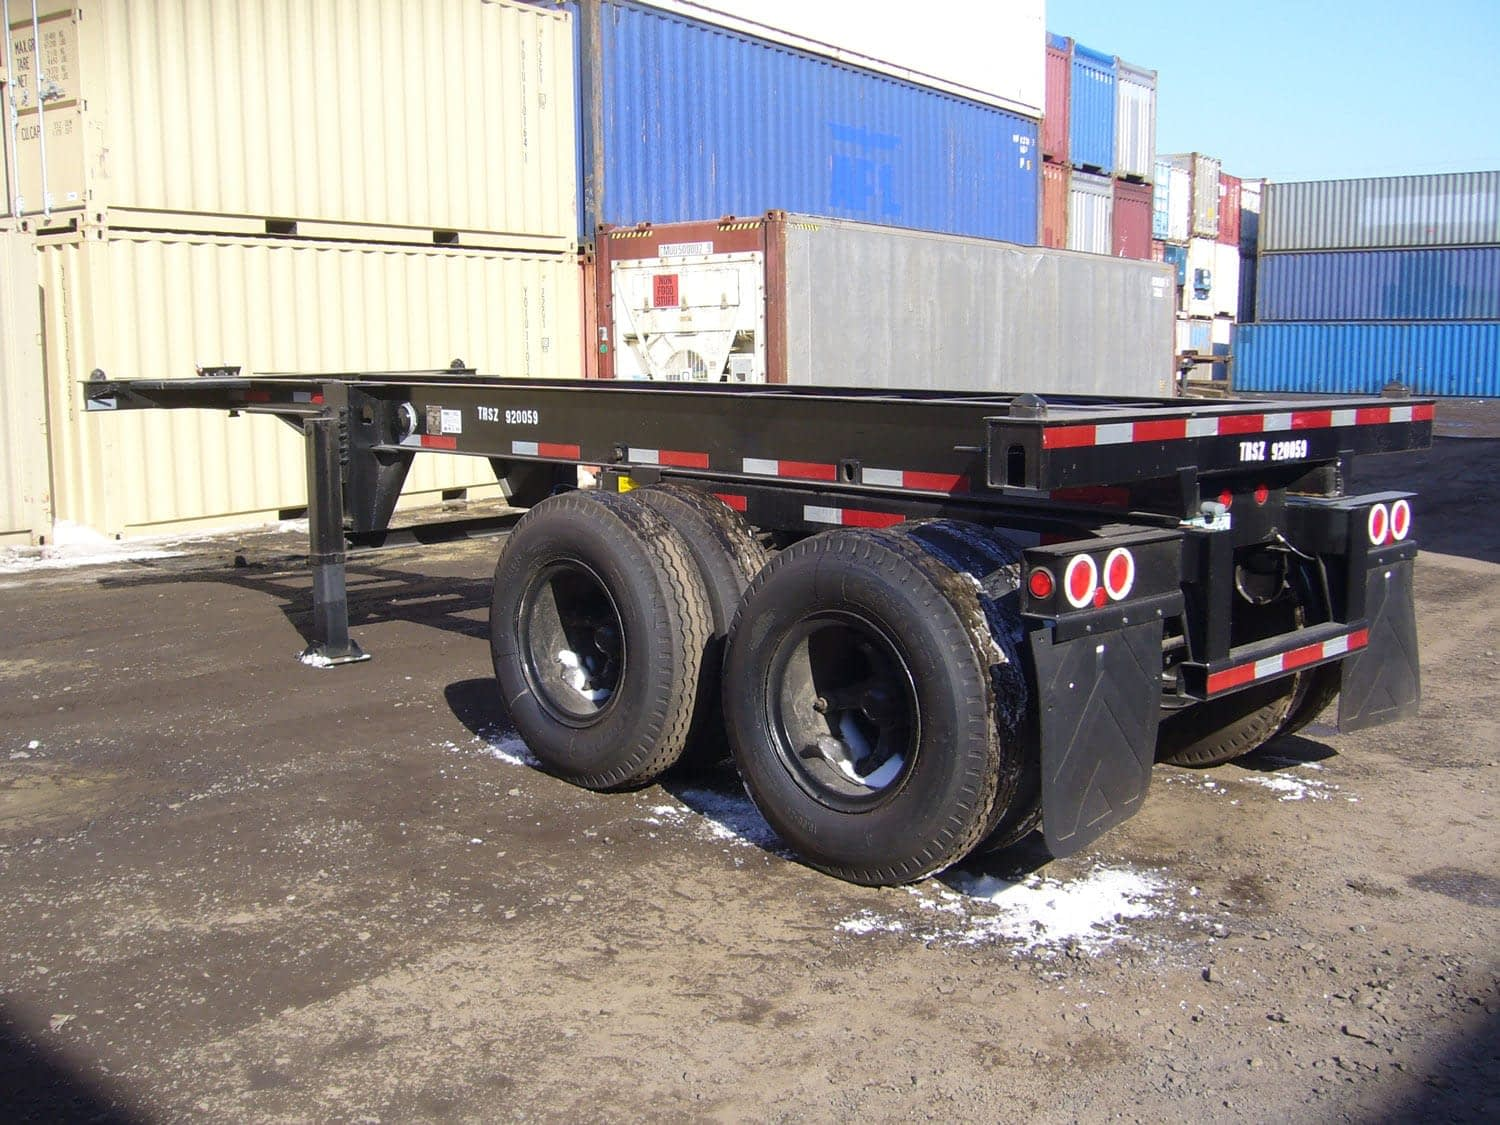 TRS sells and rents intermodal containers and chassis Nationwide